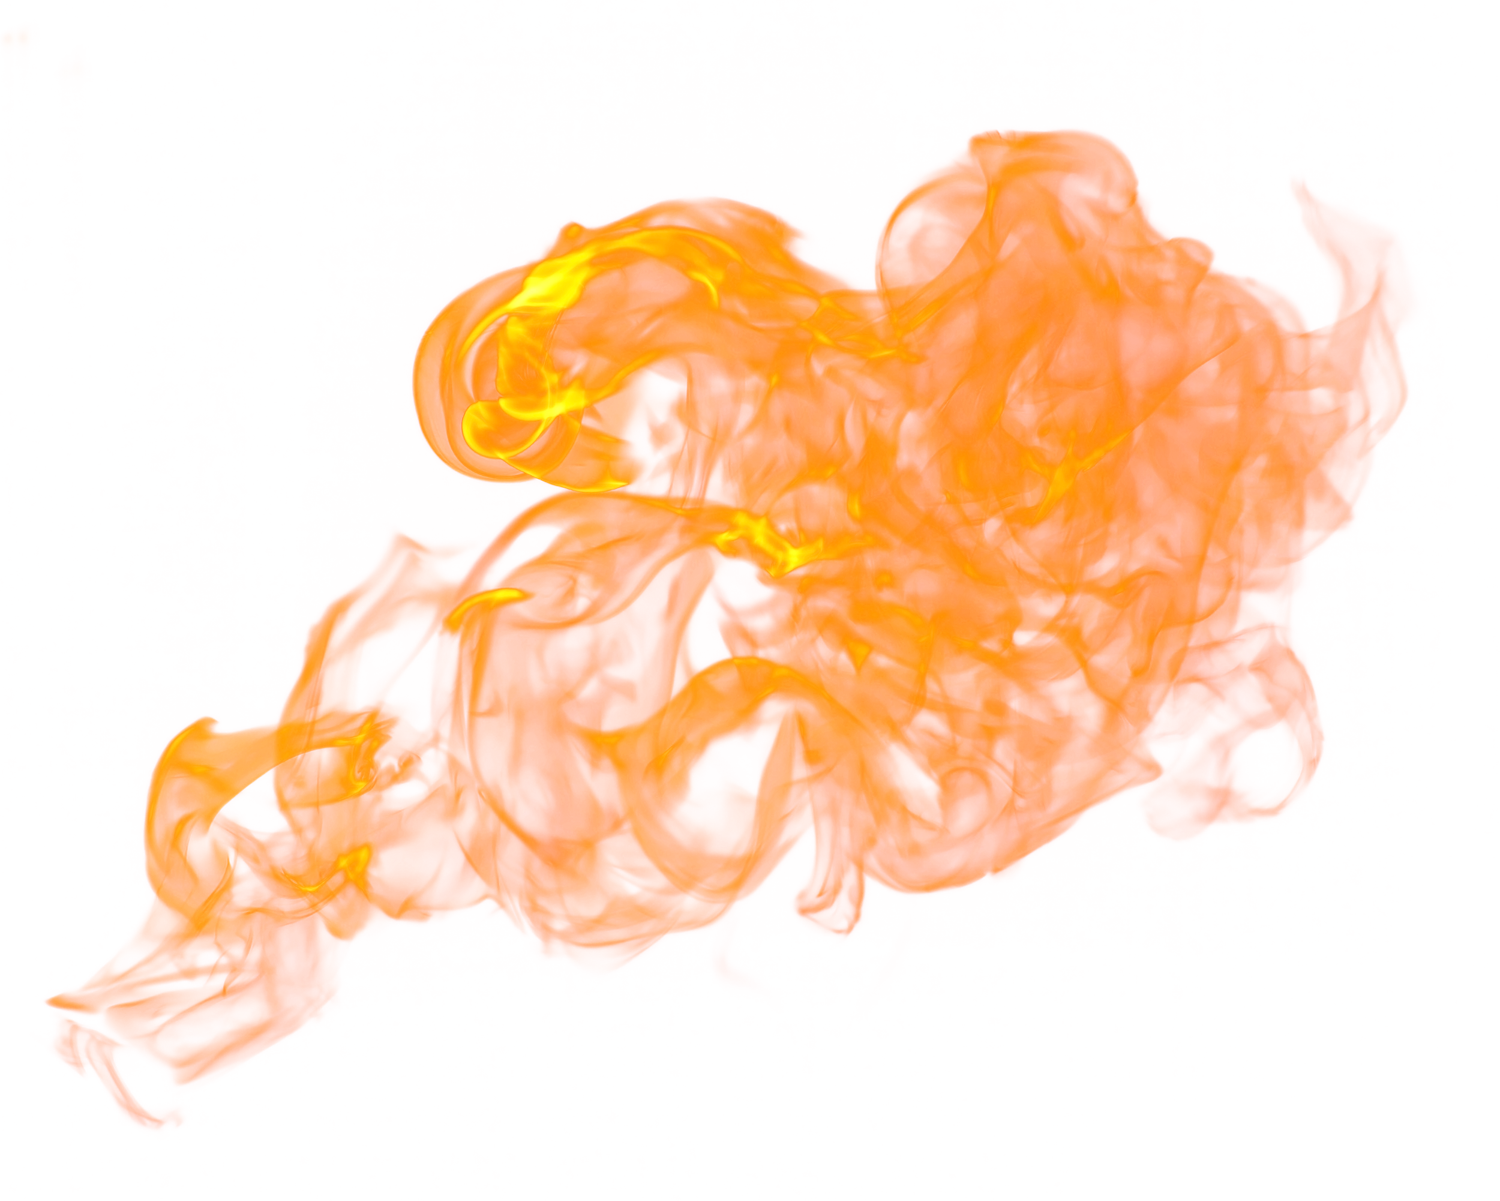 Fire Flame Png Image Fire Flames Png